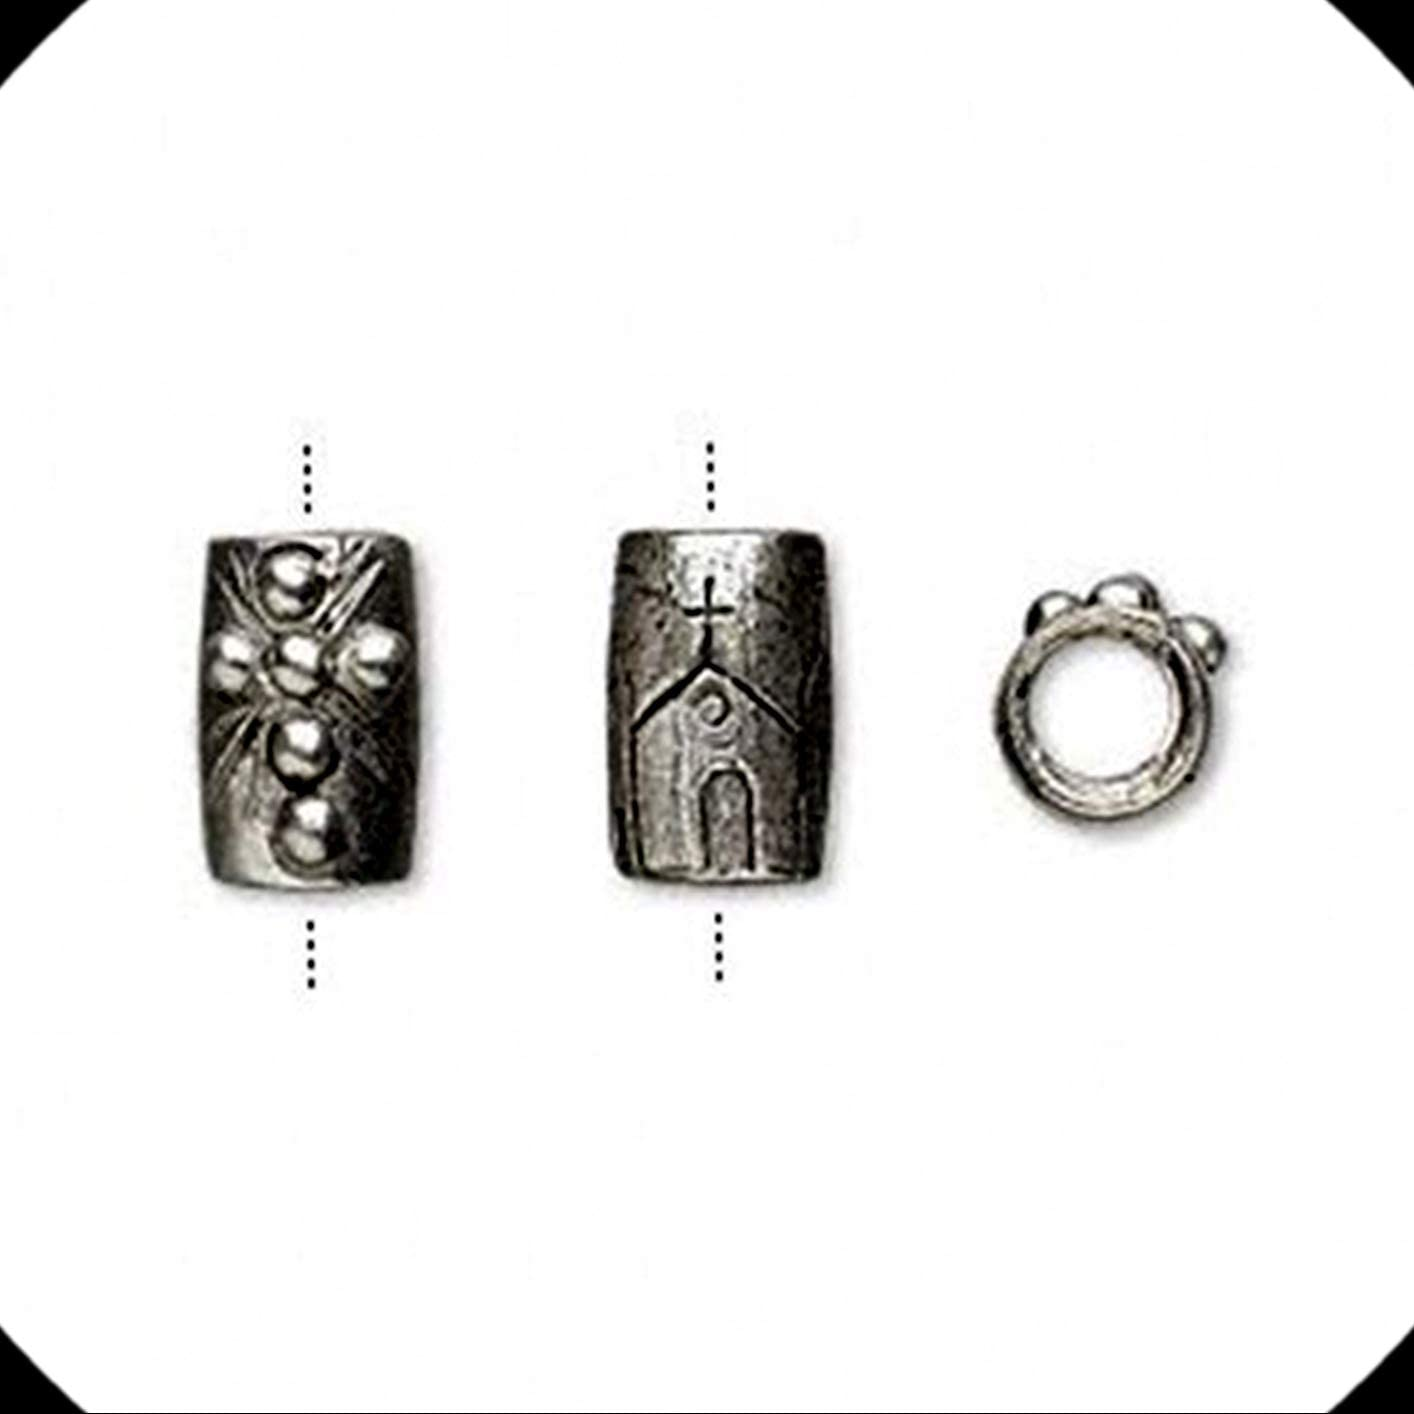 Antiqued Silver Christian Cross & Church Tube 5mm Hole European Charm Bead 1pc Adorable Charms and More for Your own Designs by CharmingStuffS